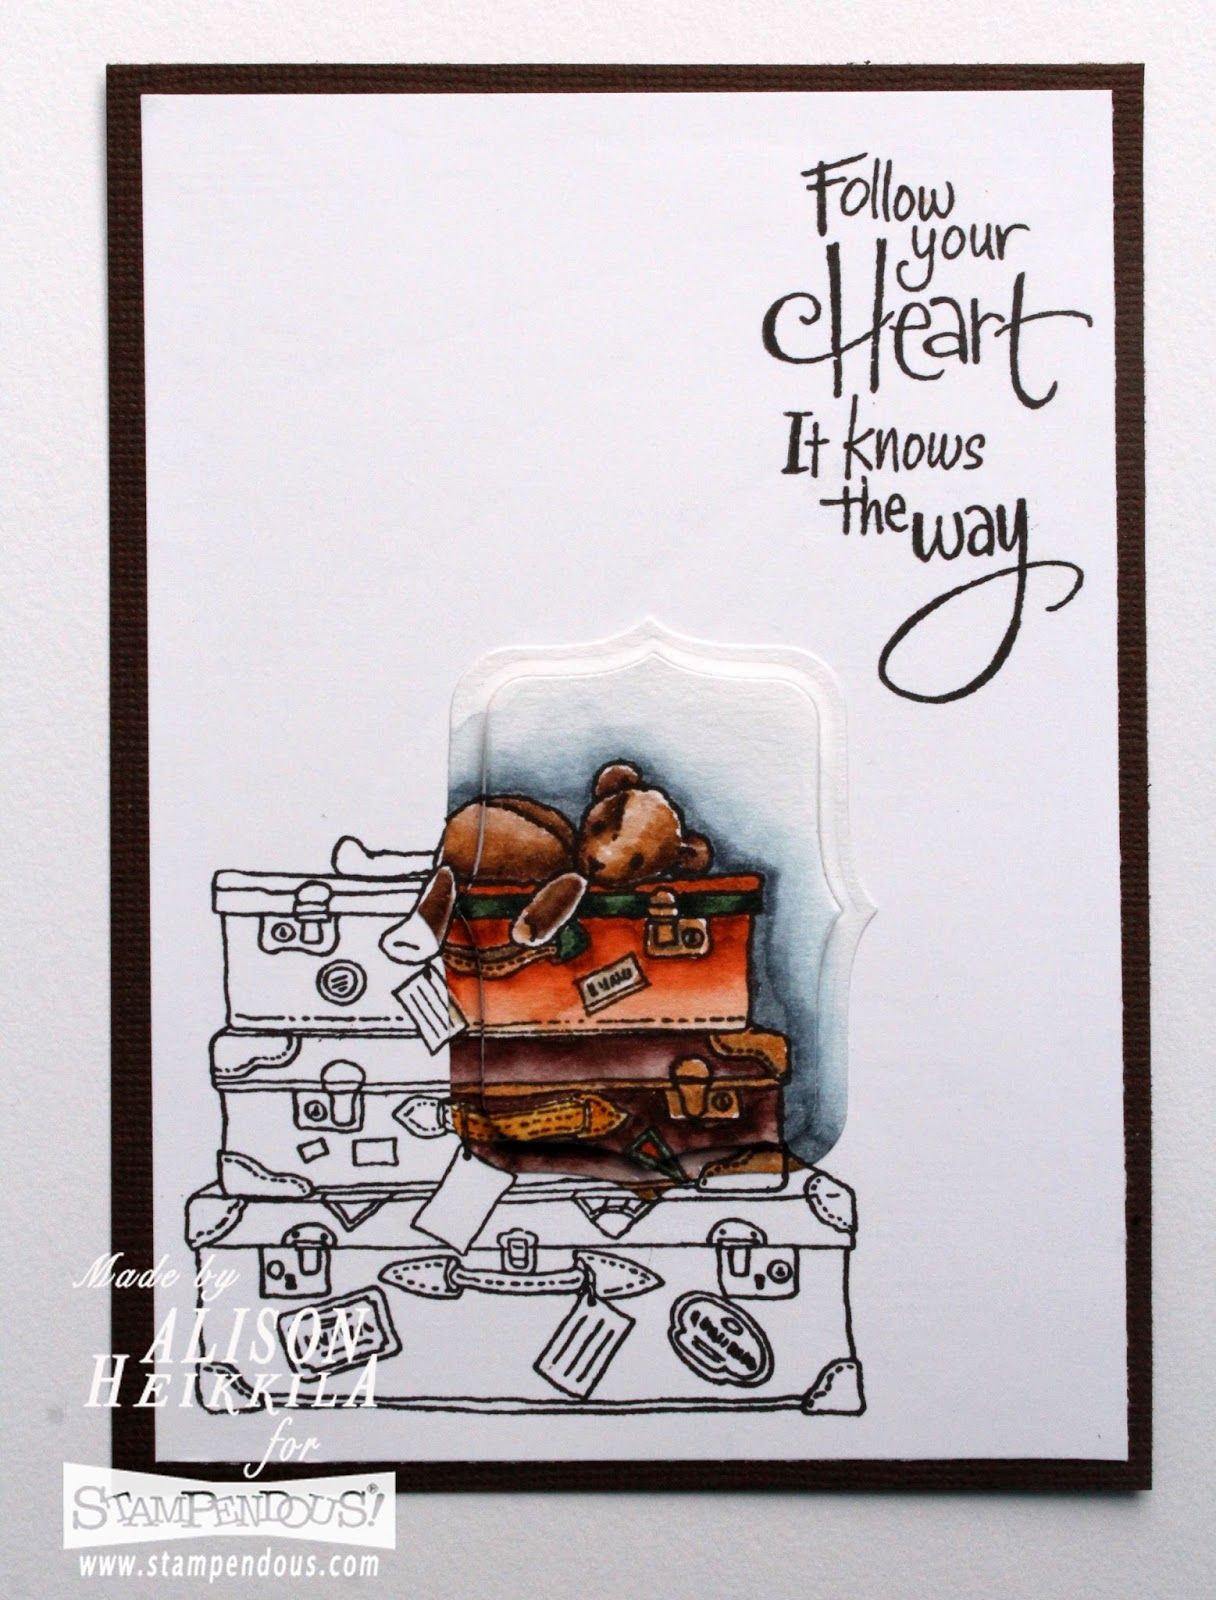 Inspire your #cre8time with #stampendous and a fun #spotlighttechnique. #travel #luggage